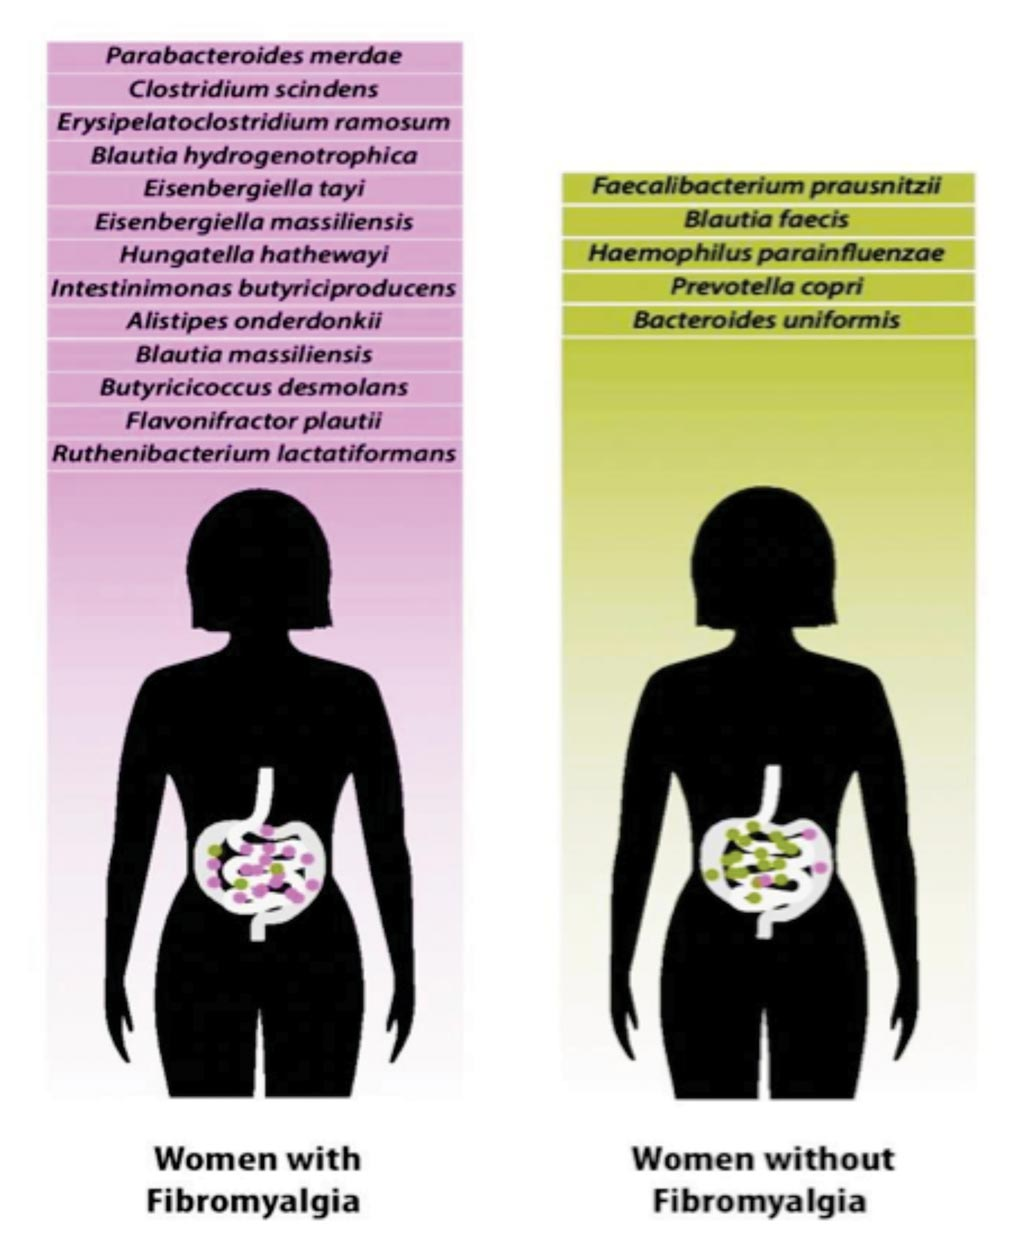 Image: Research shows fibromyalgia patients may have a distinct composition of gut microbiome species (Photo courtesy of Christopher Bergland).